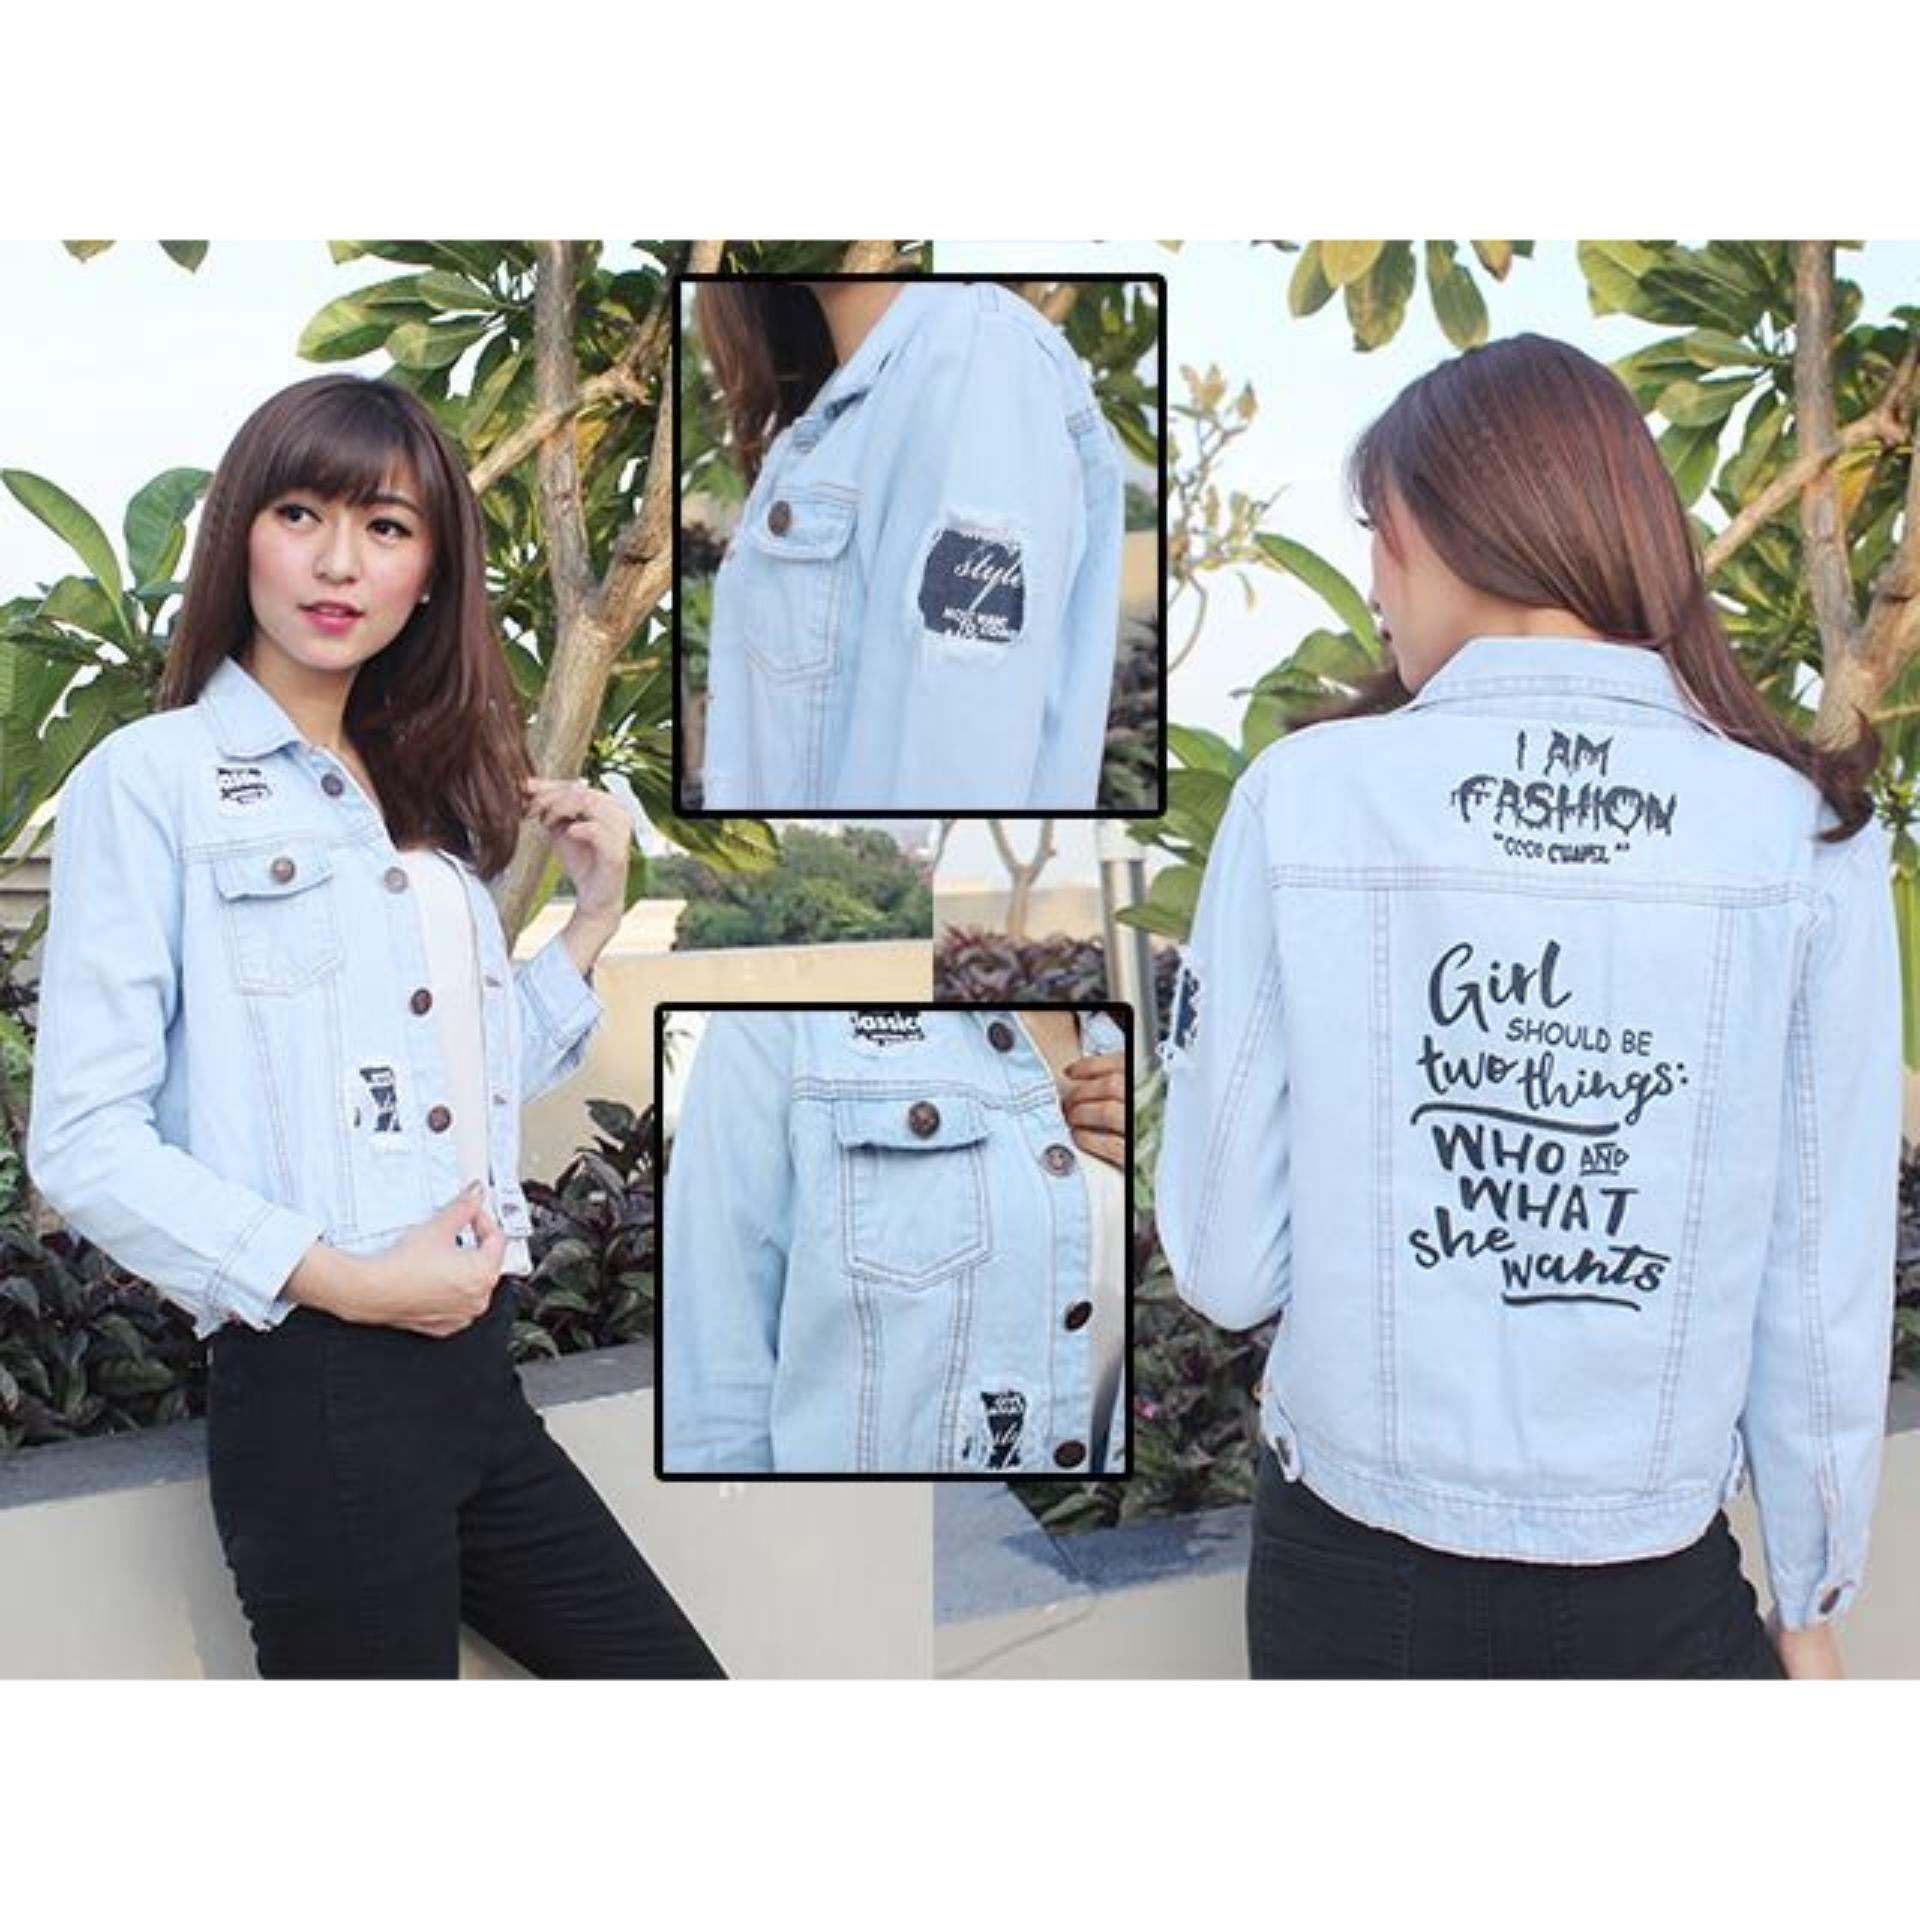 Beli Vrichel Collection Jaket Jeans Jaket Blazer Jeans Jaket Jeans Wanita Easy The Virgin Real Pict Online Terpercaya